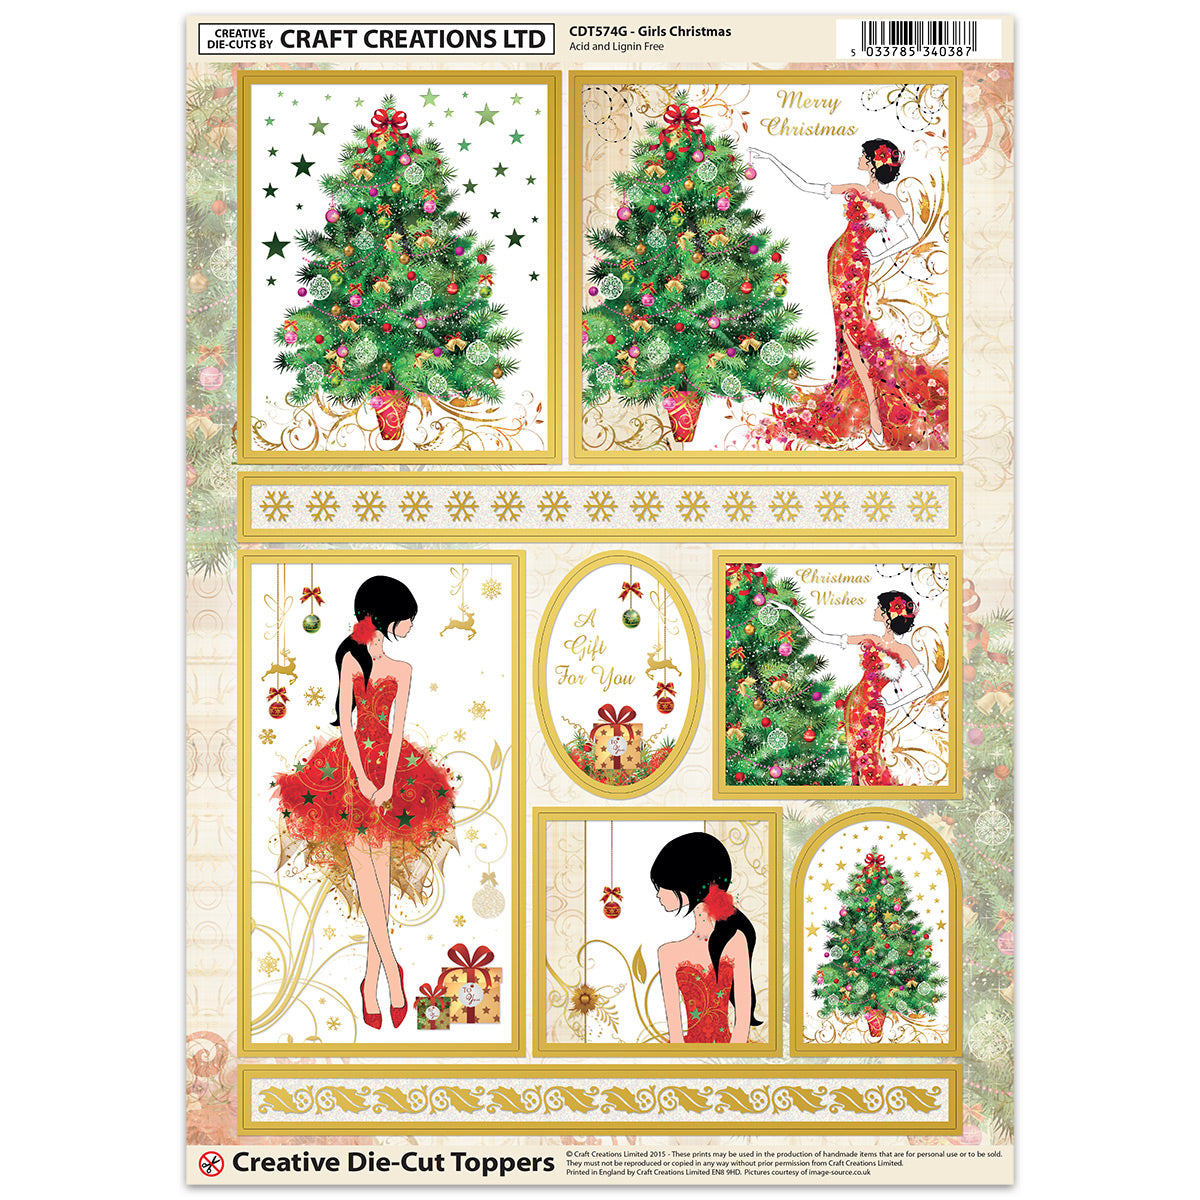 CRAFT CREATION GIRLS CHRISTMAS TOPPERS FOR CARDS /& CRAFT